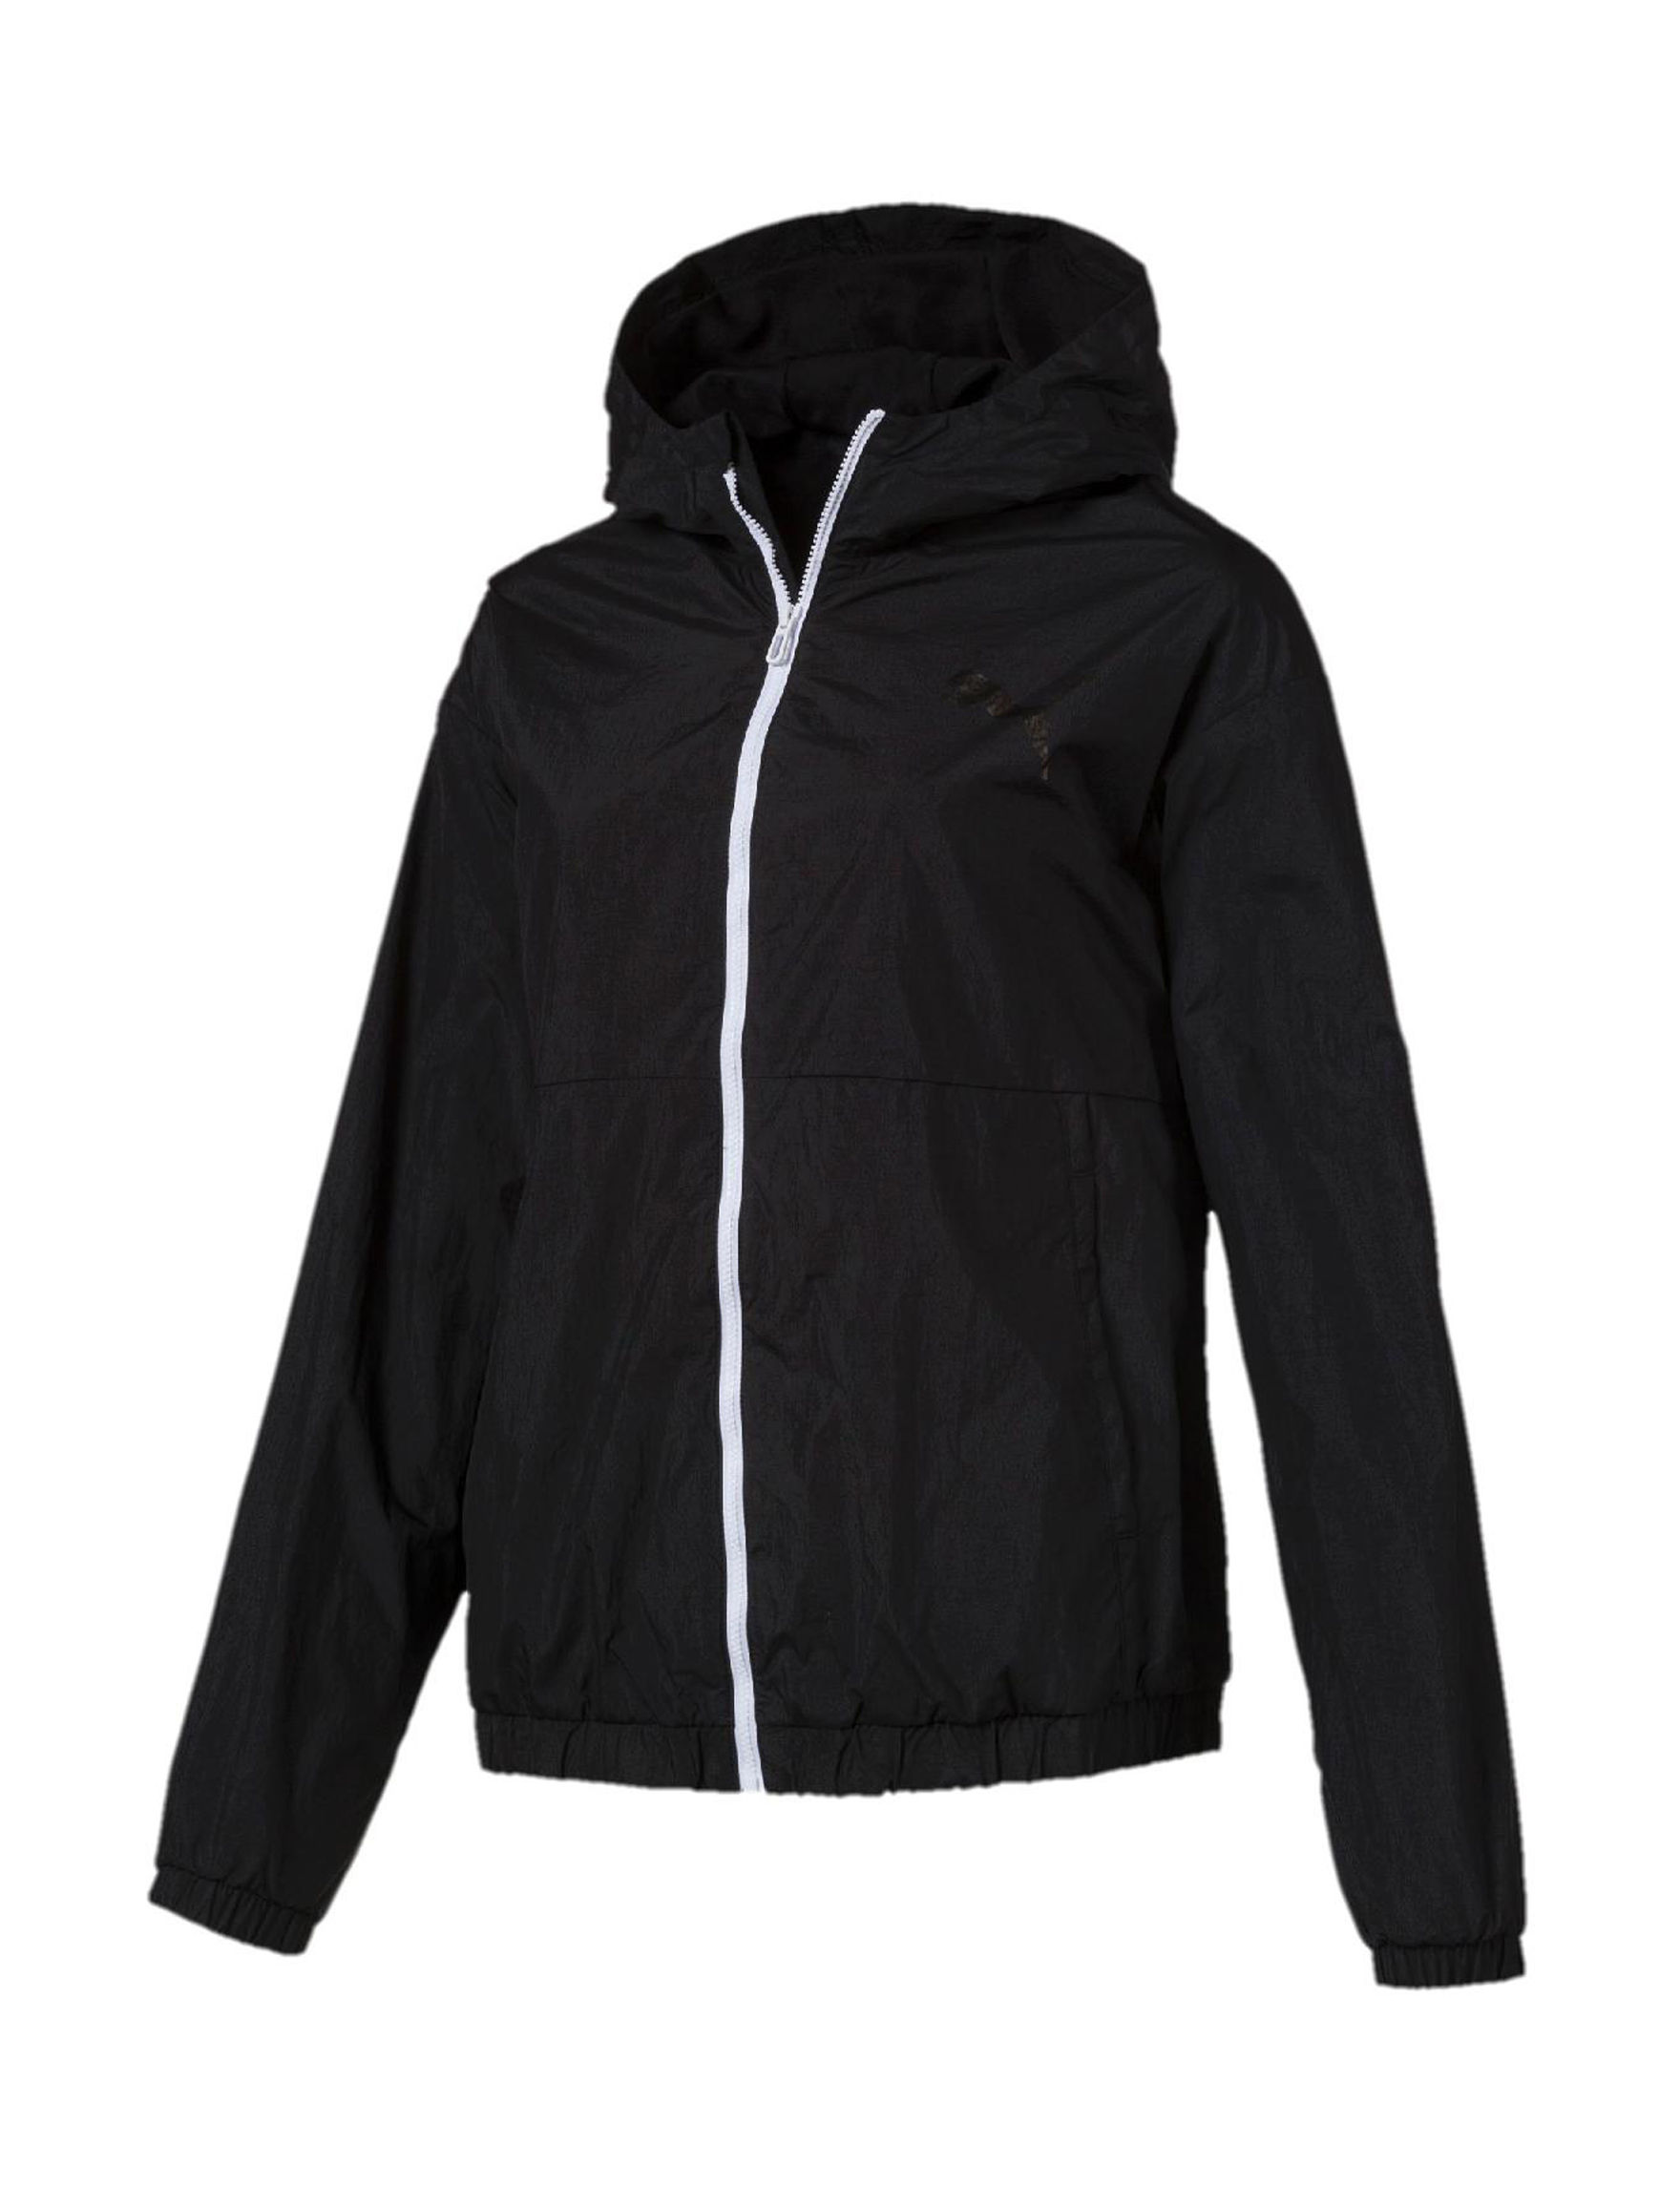 Puma Black White Active Lightweight Jackets & Blazers